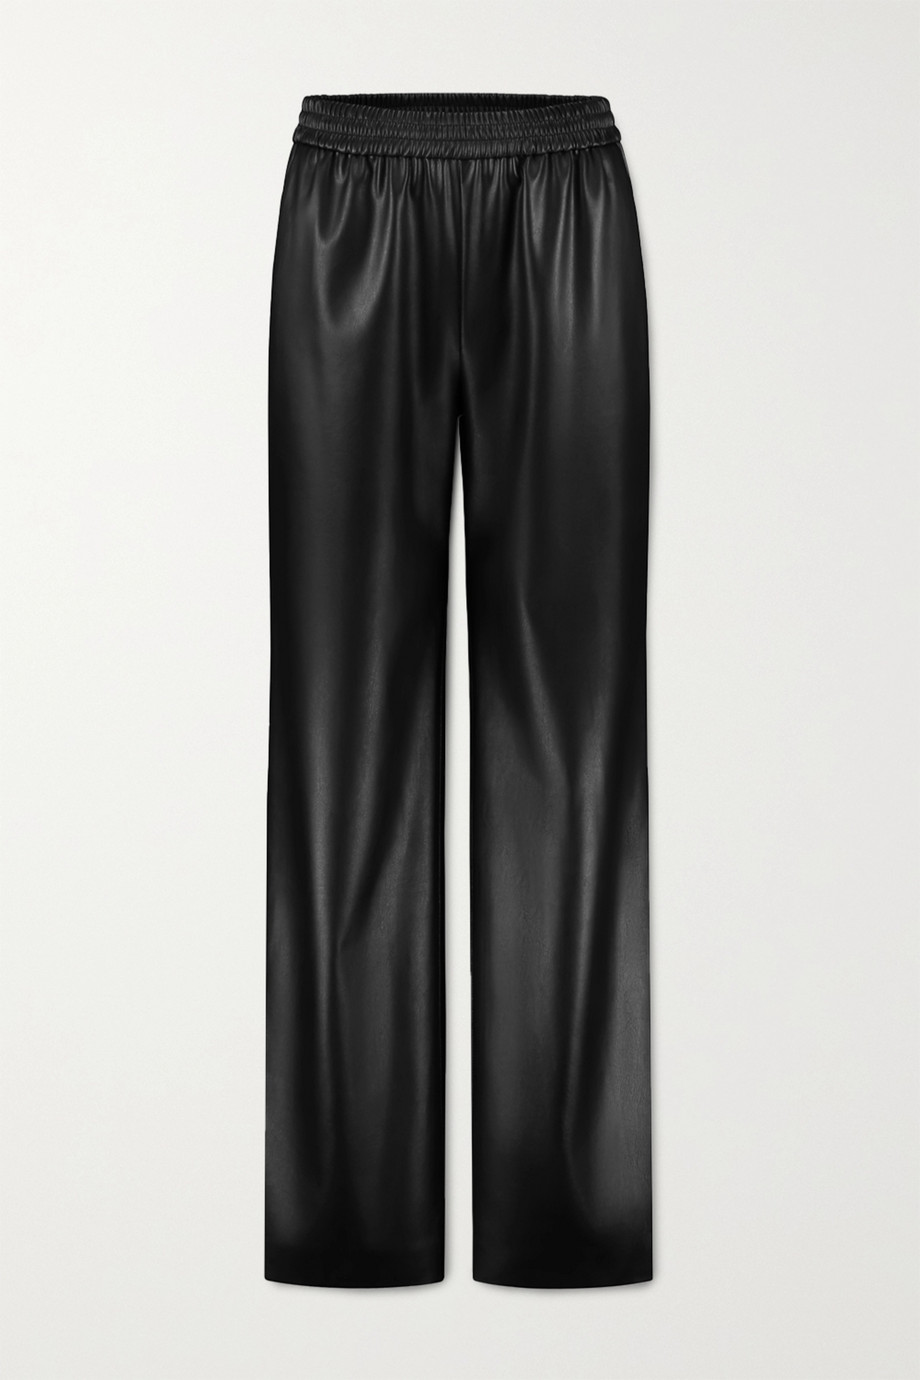 GAUGE81 Durban faux leather straight-leg pants